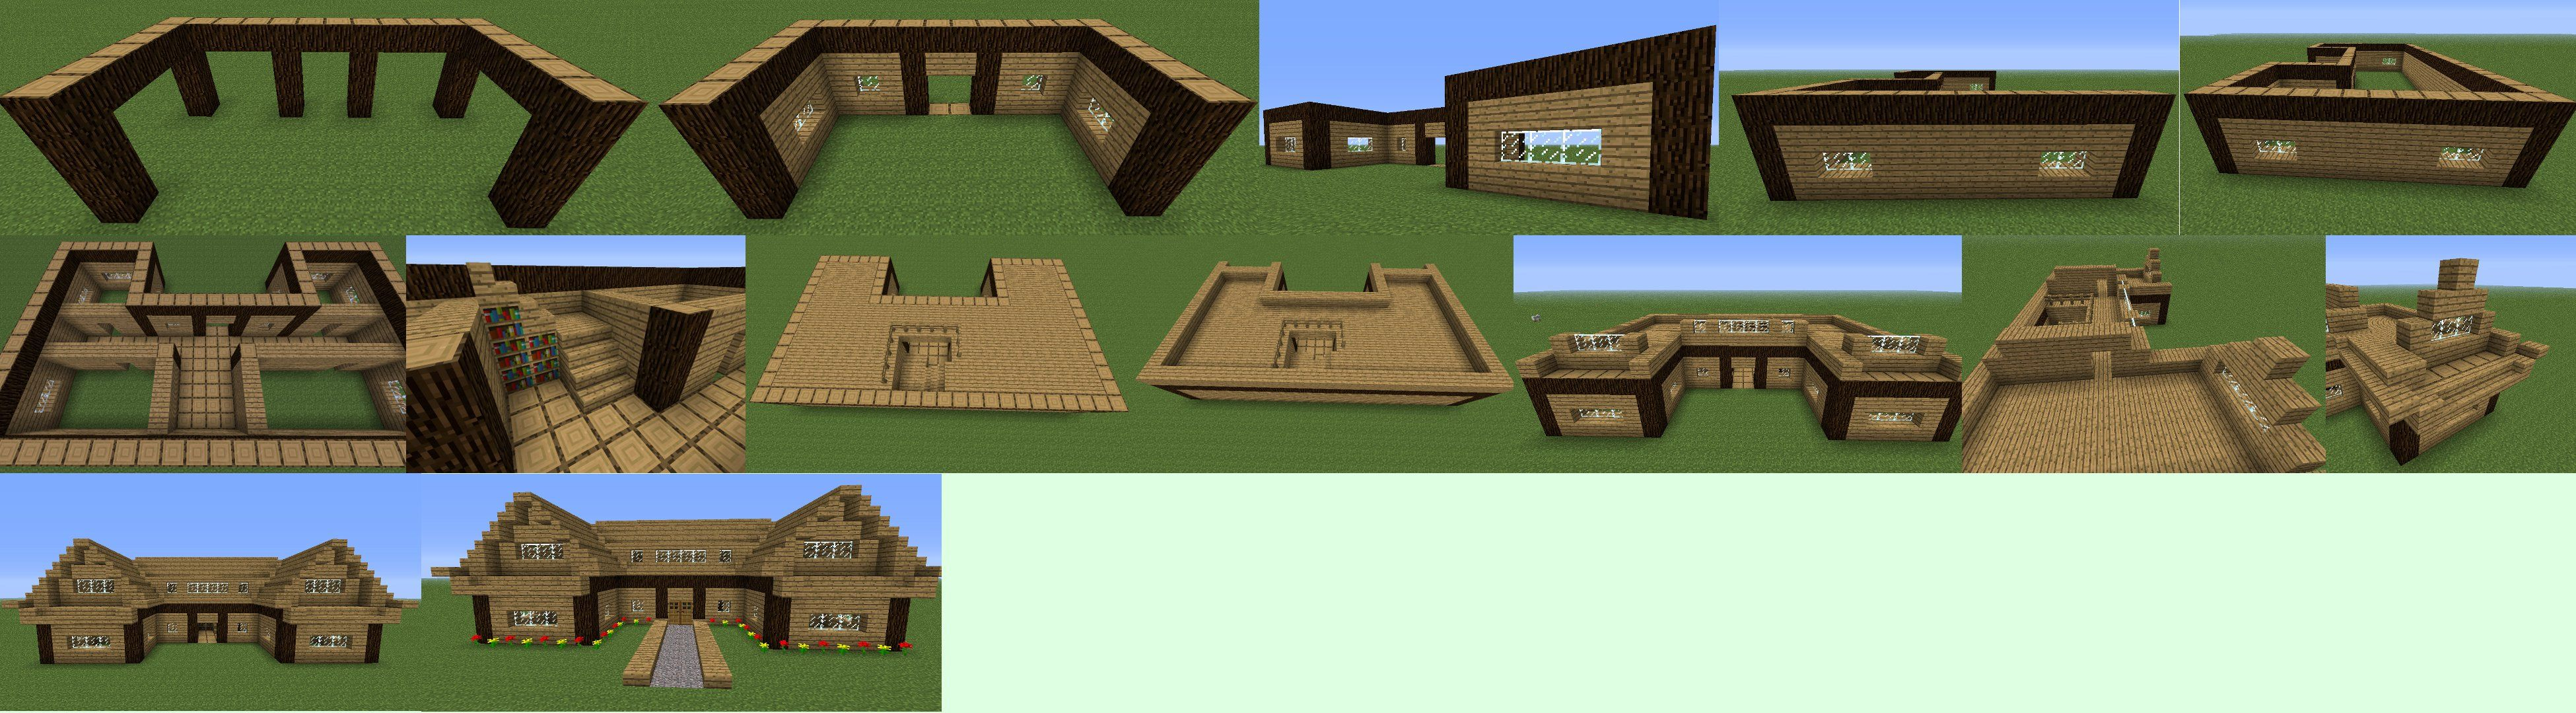 Minecraft houses step by step google search minecraft for Building a house step by step